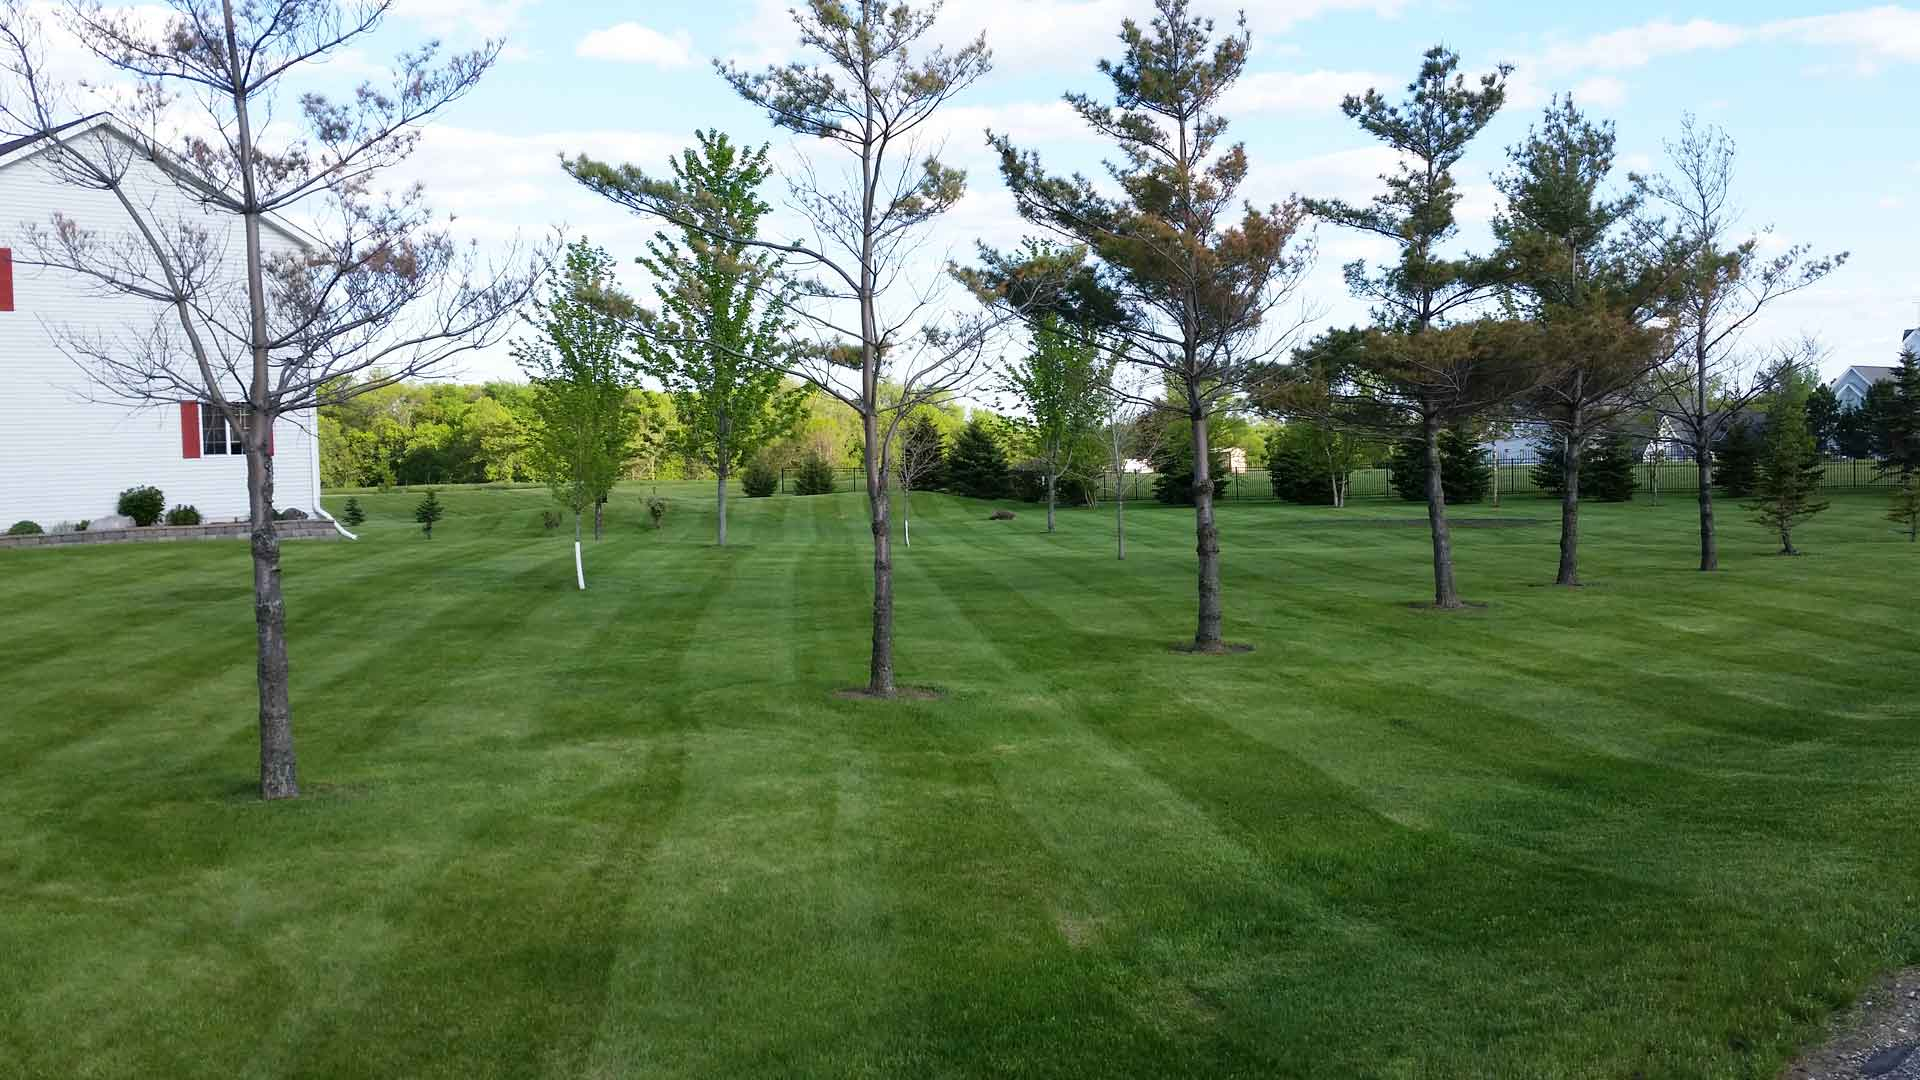 Residential property in St. Cloud with our lawn care services.